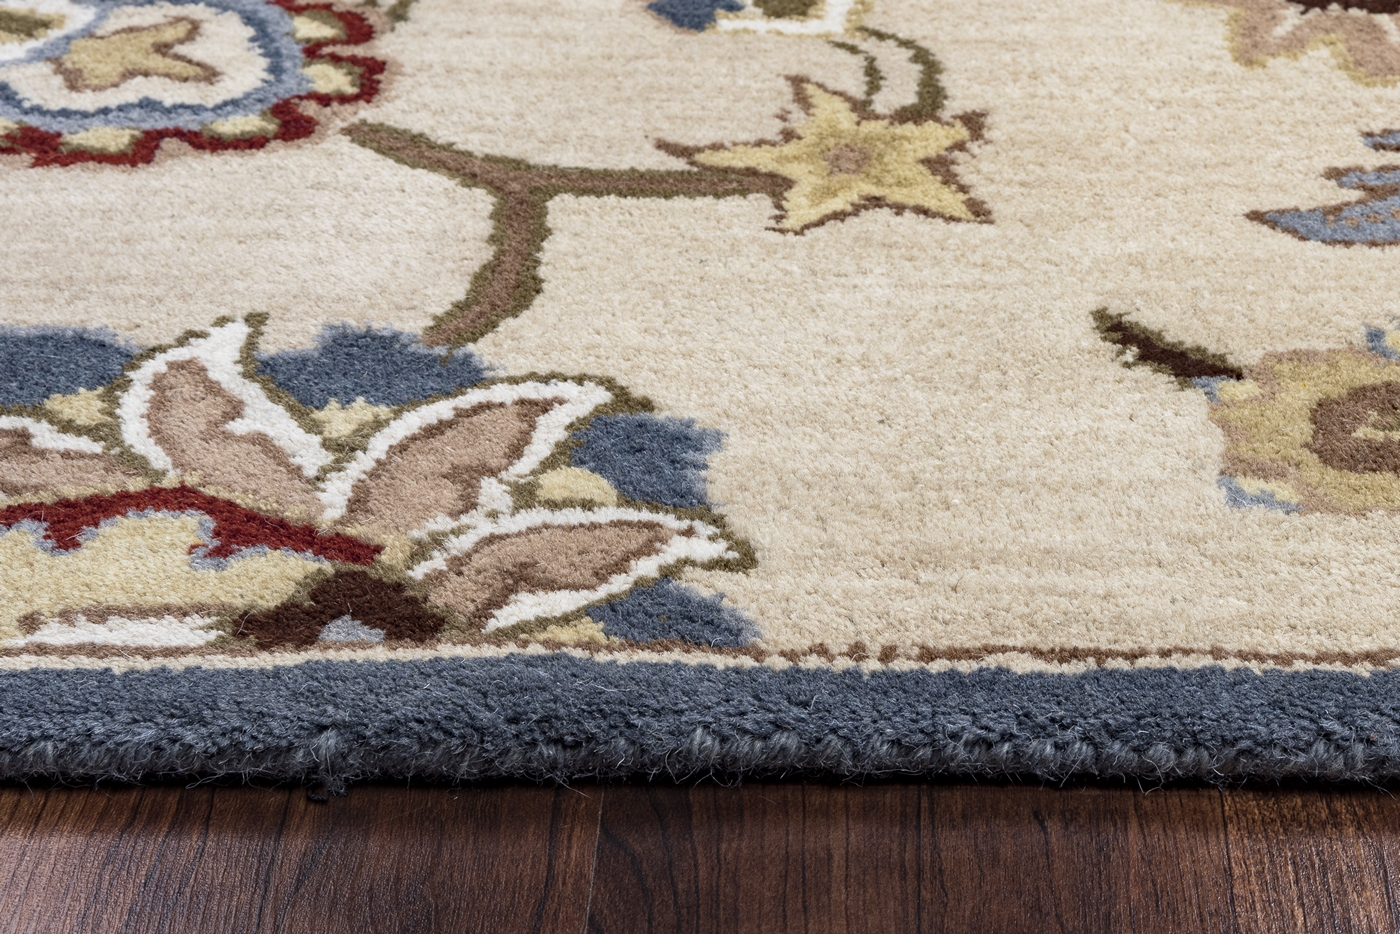 Valintino Ornate Vine Mums Wool Area Rug In Beige Blue